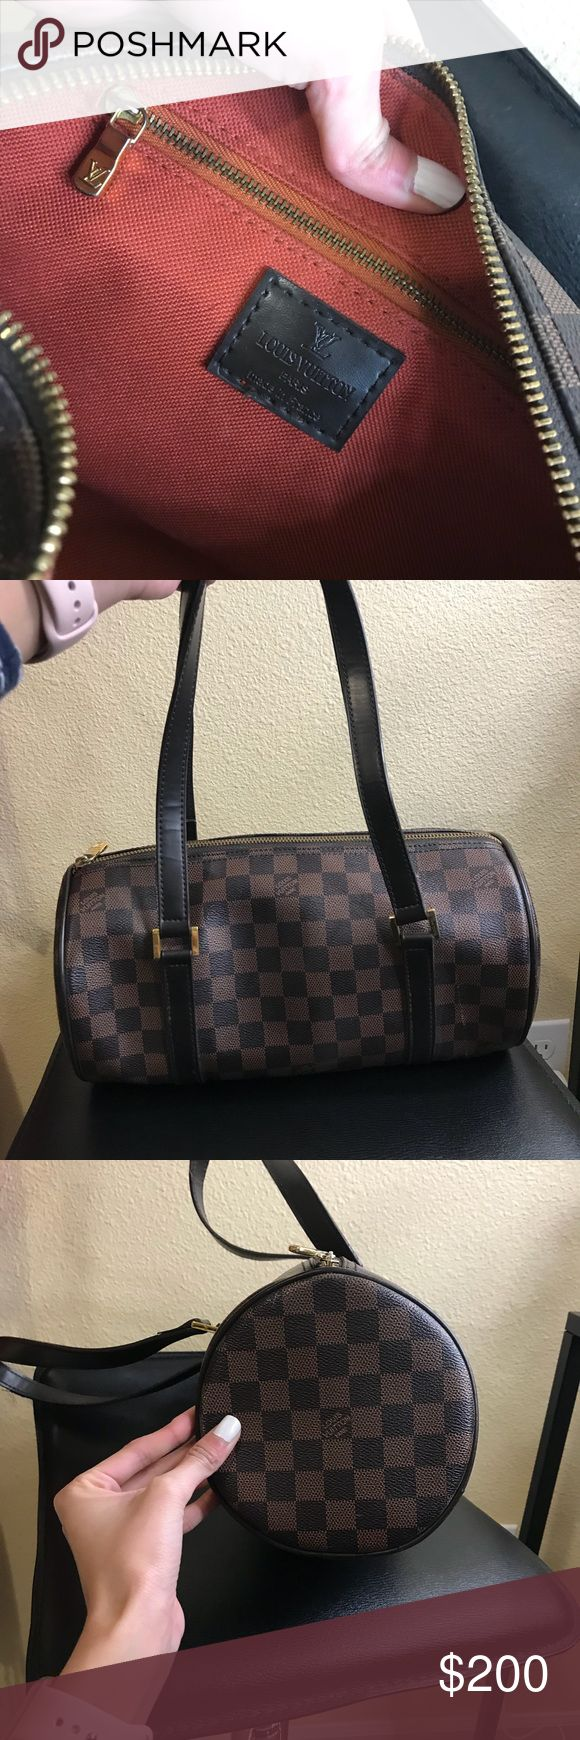 Louis Vuitton Purse 👜 Love this bag! Super cute and has the original signature design. Price is low because there is some significant signs of wear throughout the purse. The straps are coming apart and there are scratches shown in pics above! Will post pic of date code if requested! Louis Vuitton Bags Shoulder Bags